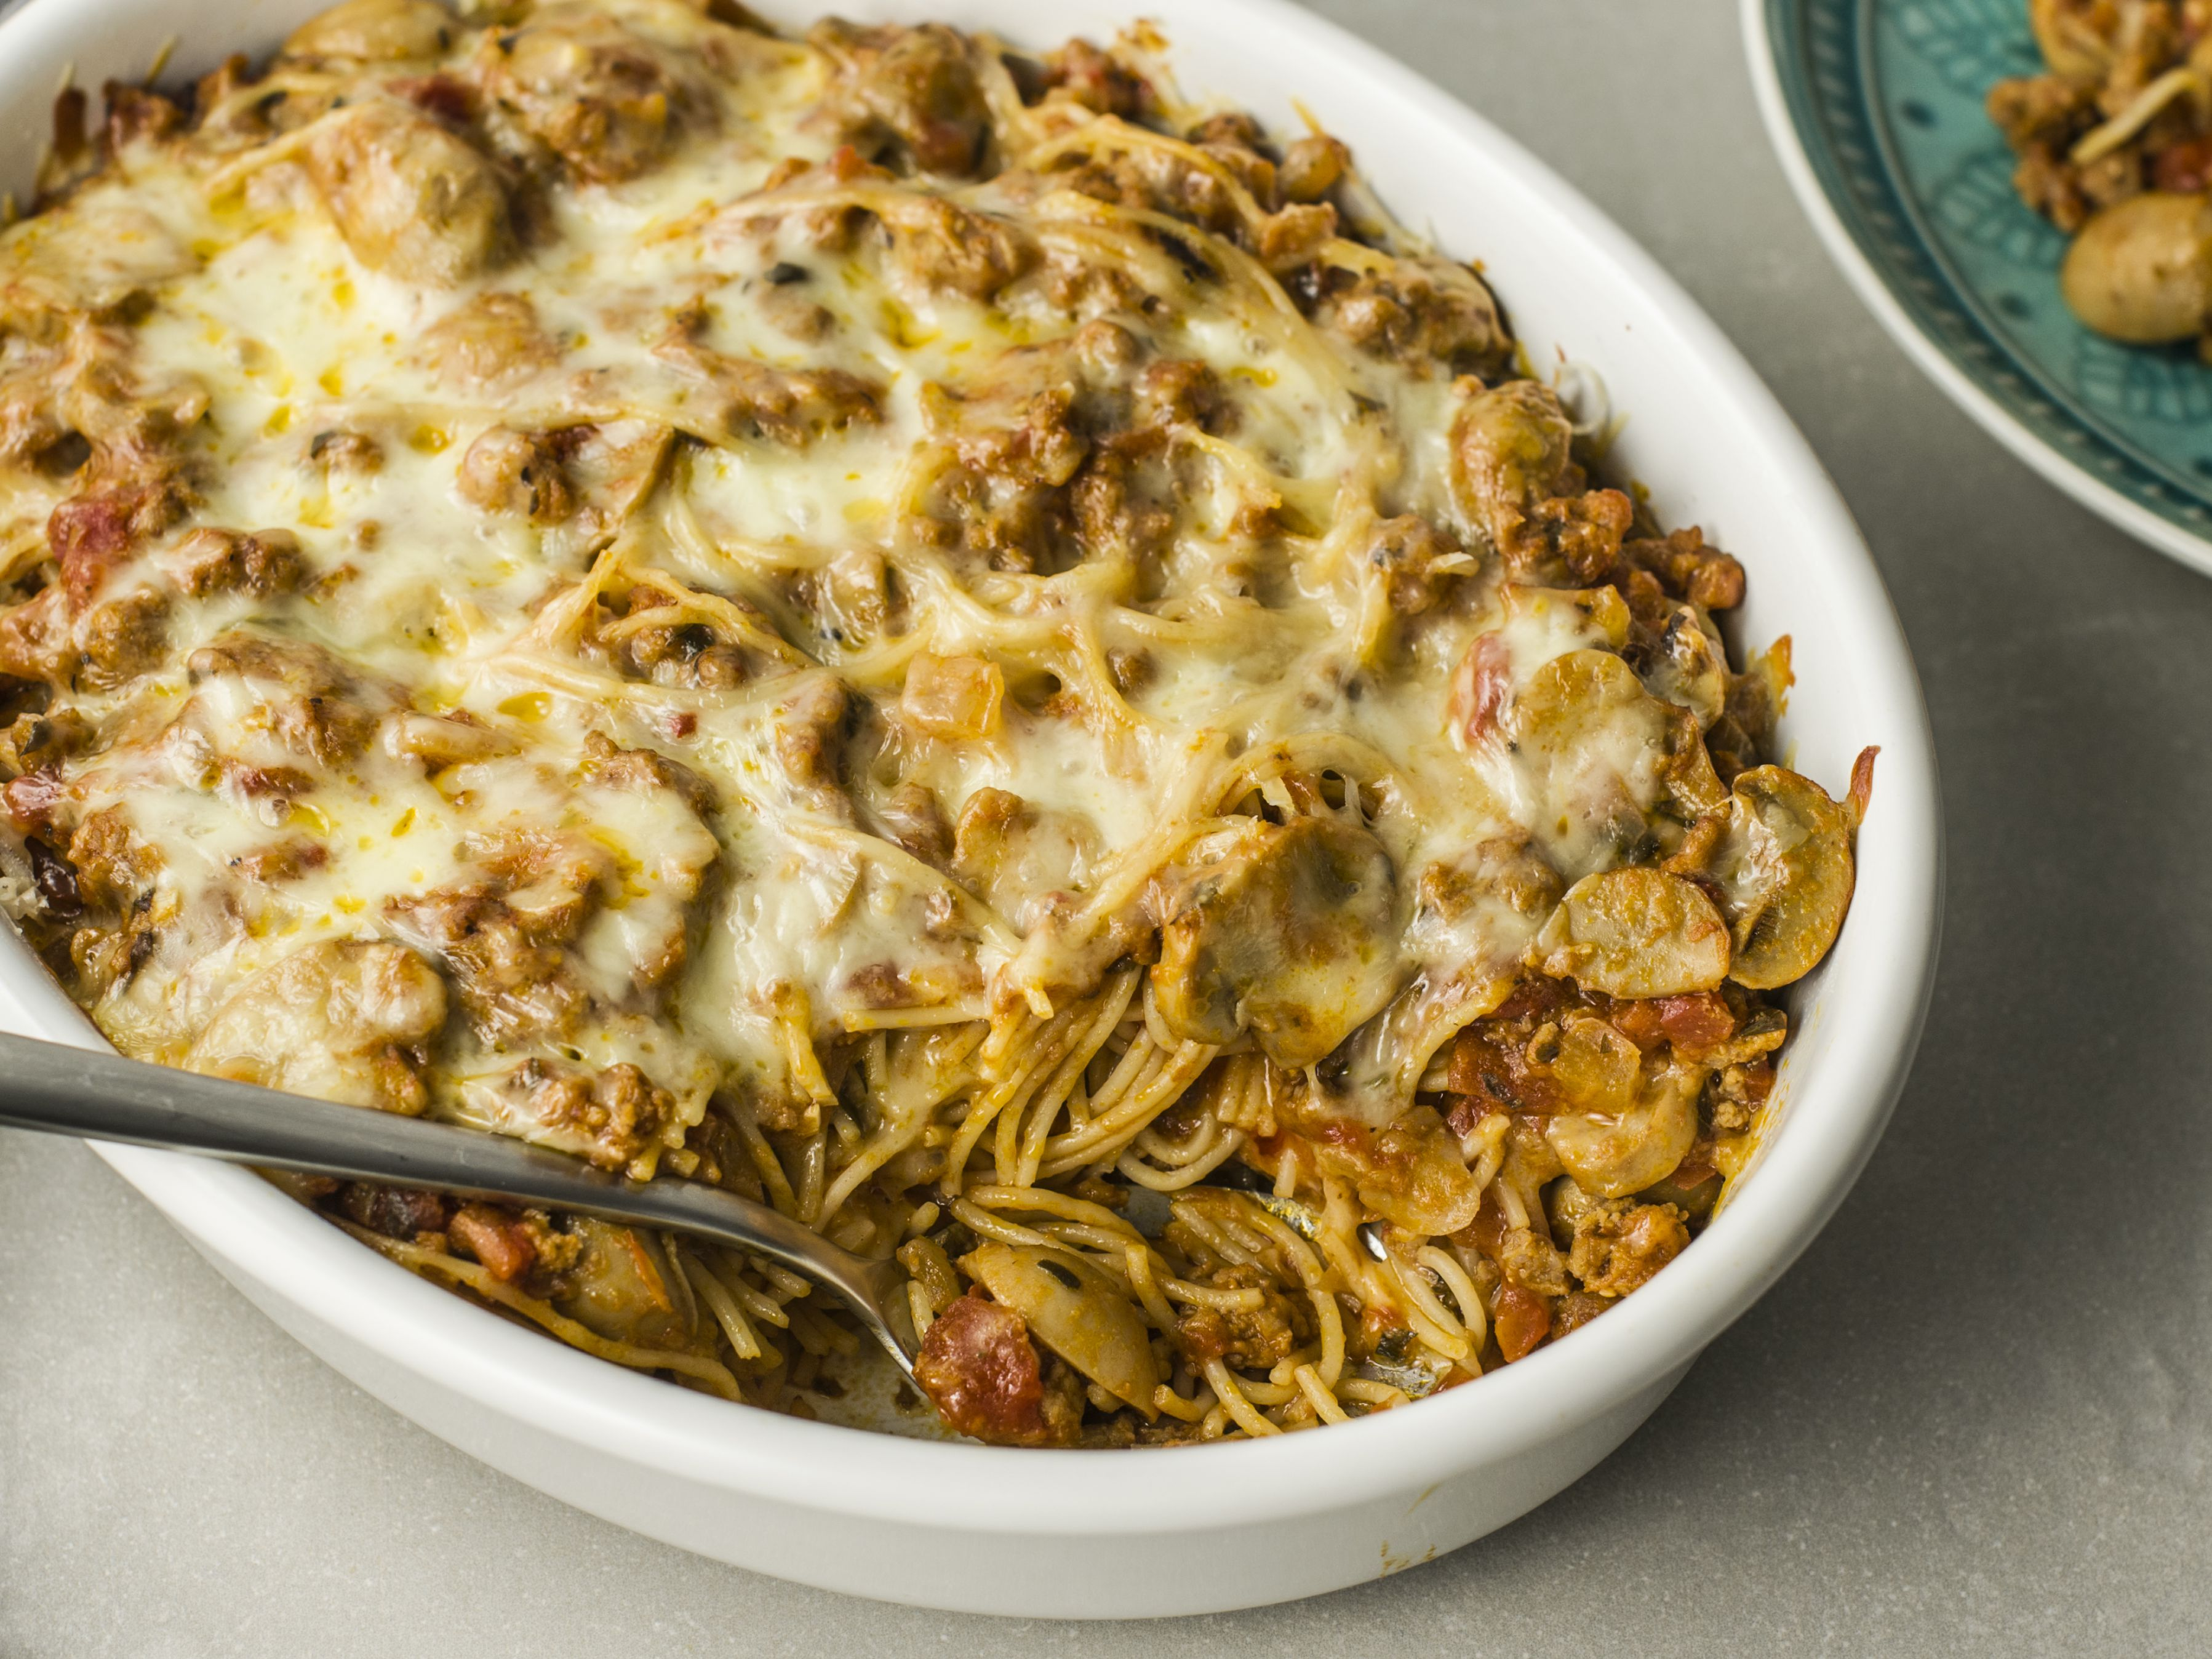 Spaghetti Casserole With Ground Beef And Cheese Recipe